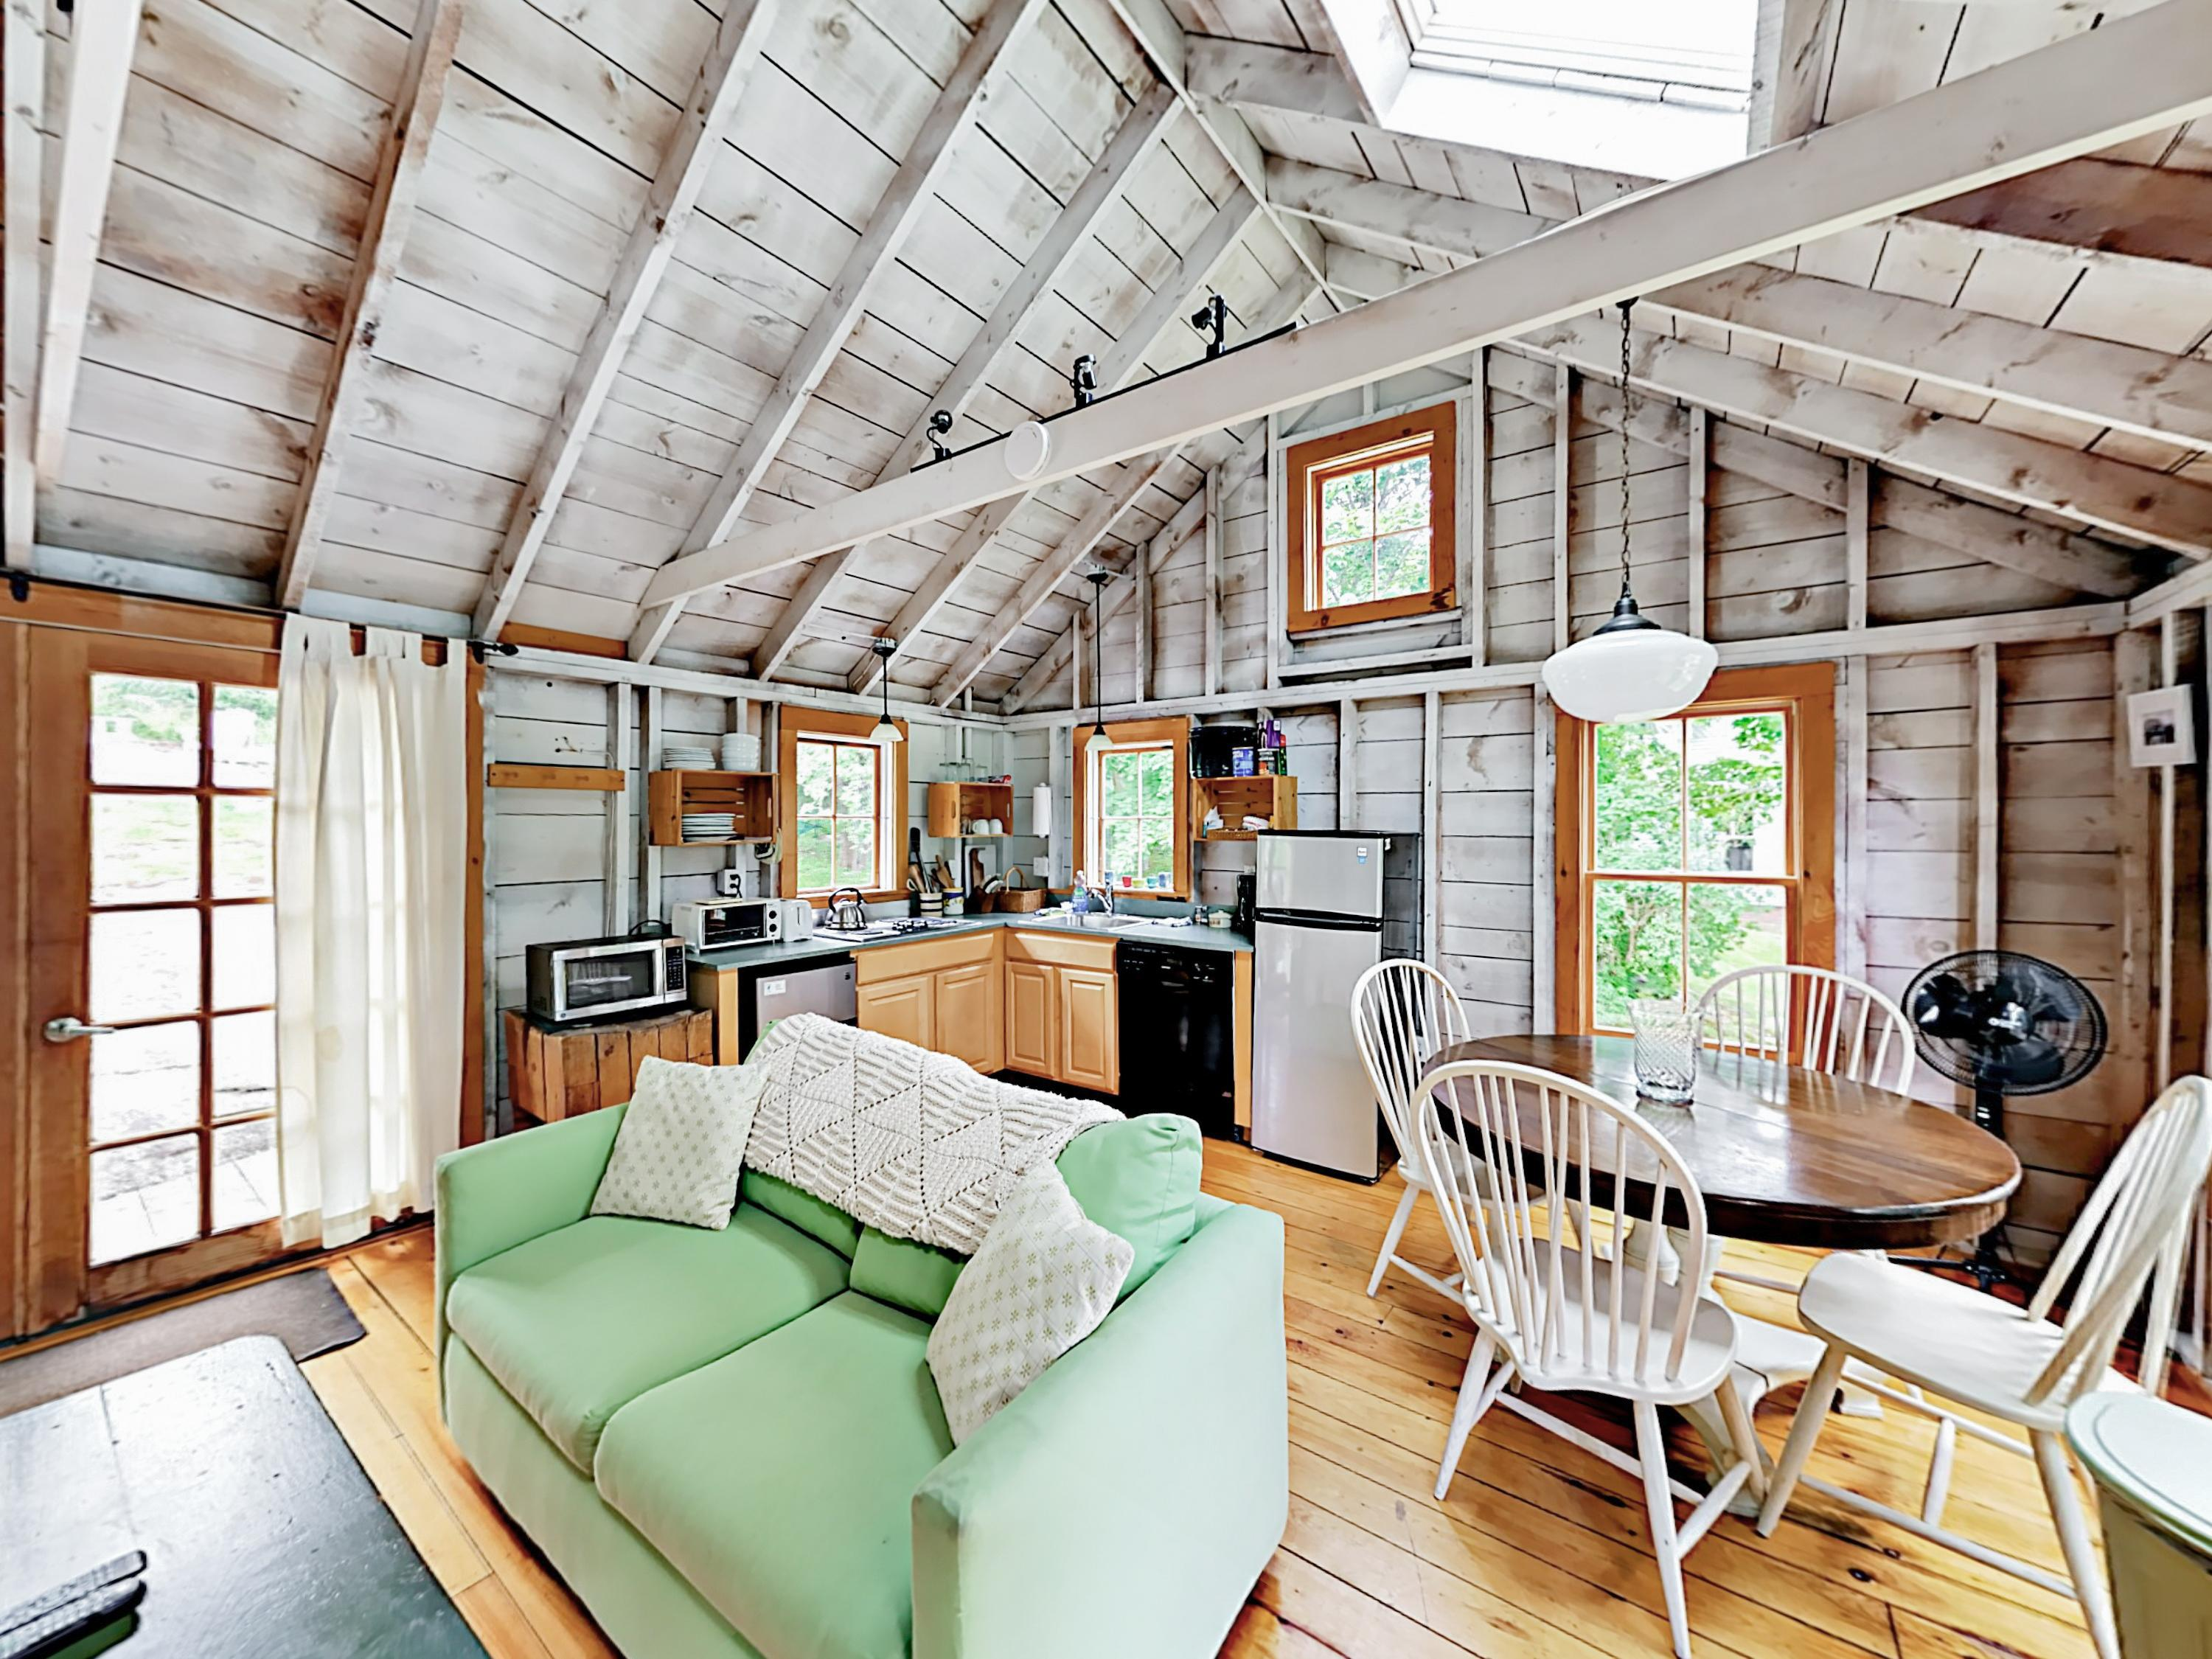 Peaceful South Bristol Cottage with Loft near Harbor